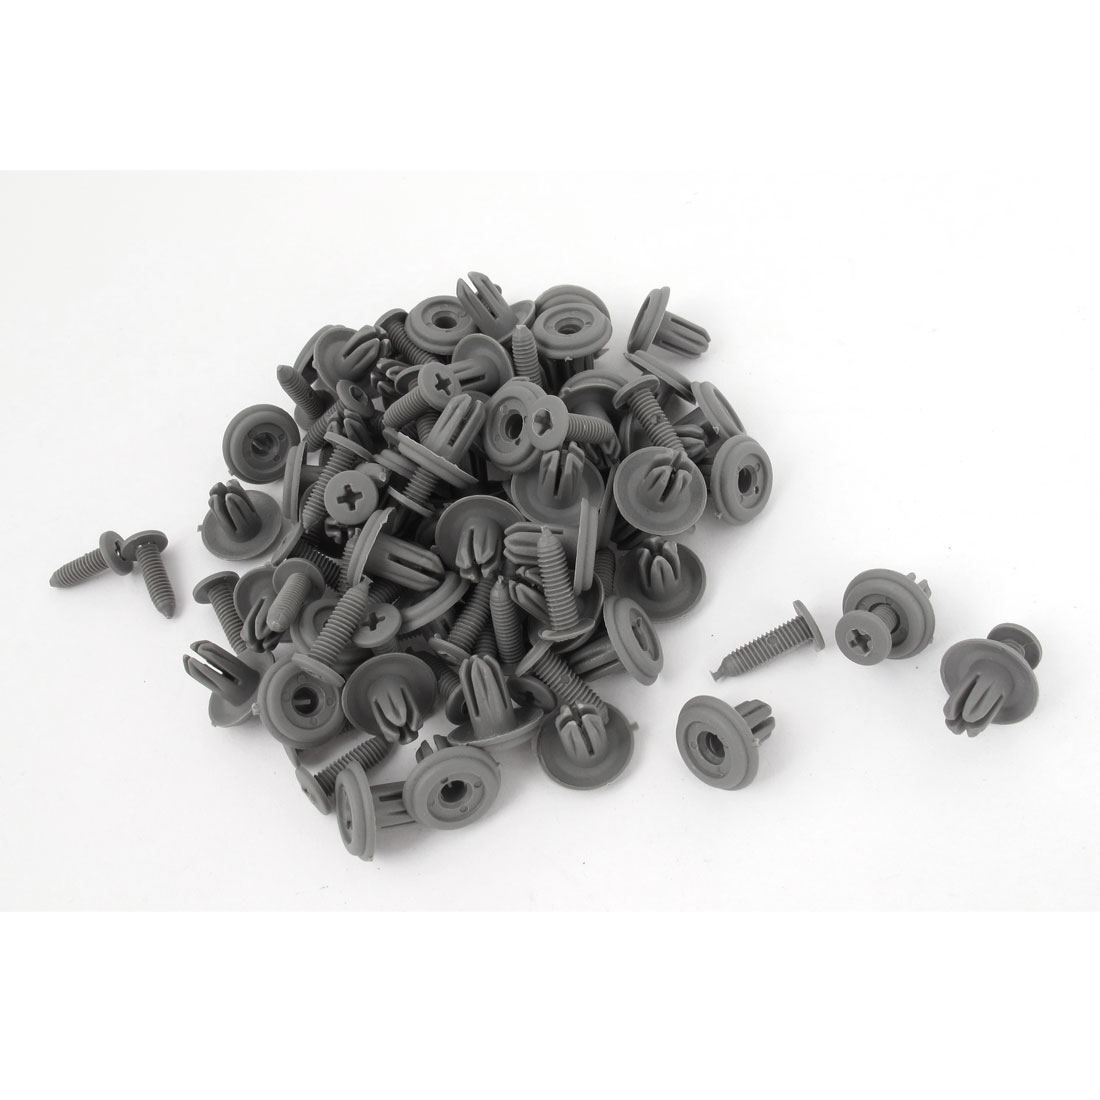 50 PCS Push in Type Plastic Rivets Fender Clips Gray 3mm x 6mm